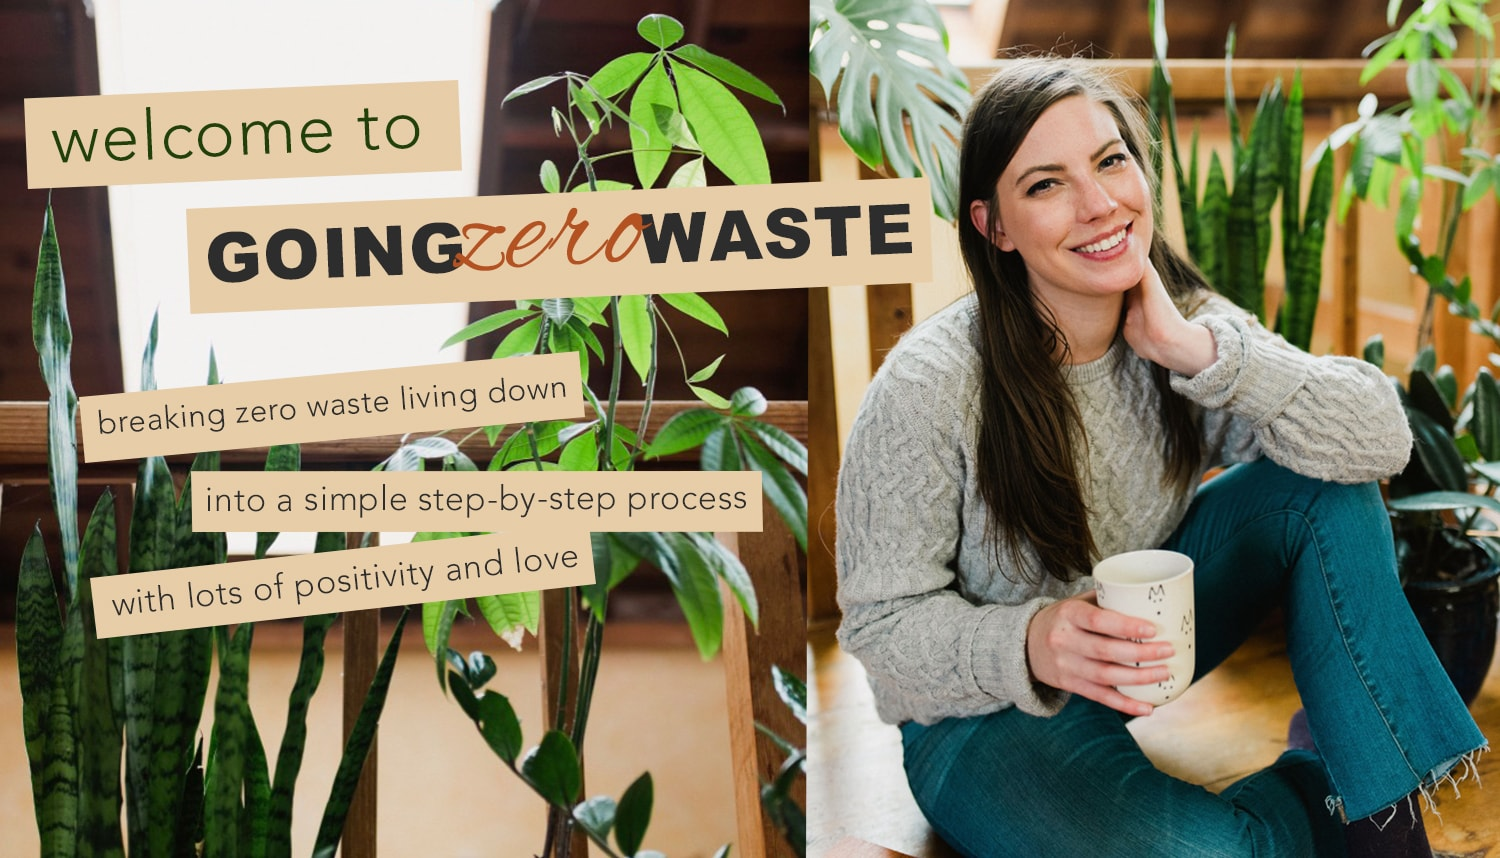 Welcome to Going Zero Waste breaking zero-waste, eco-friendly sustainable living down into a simple step by step process with lots of positivity and love founded by Kathryn Kellogg